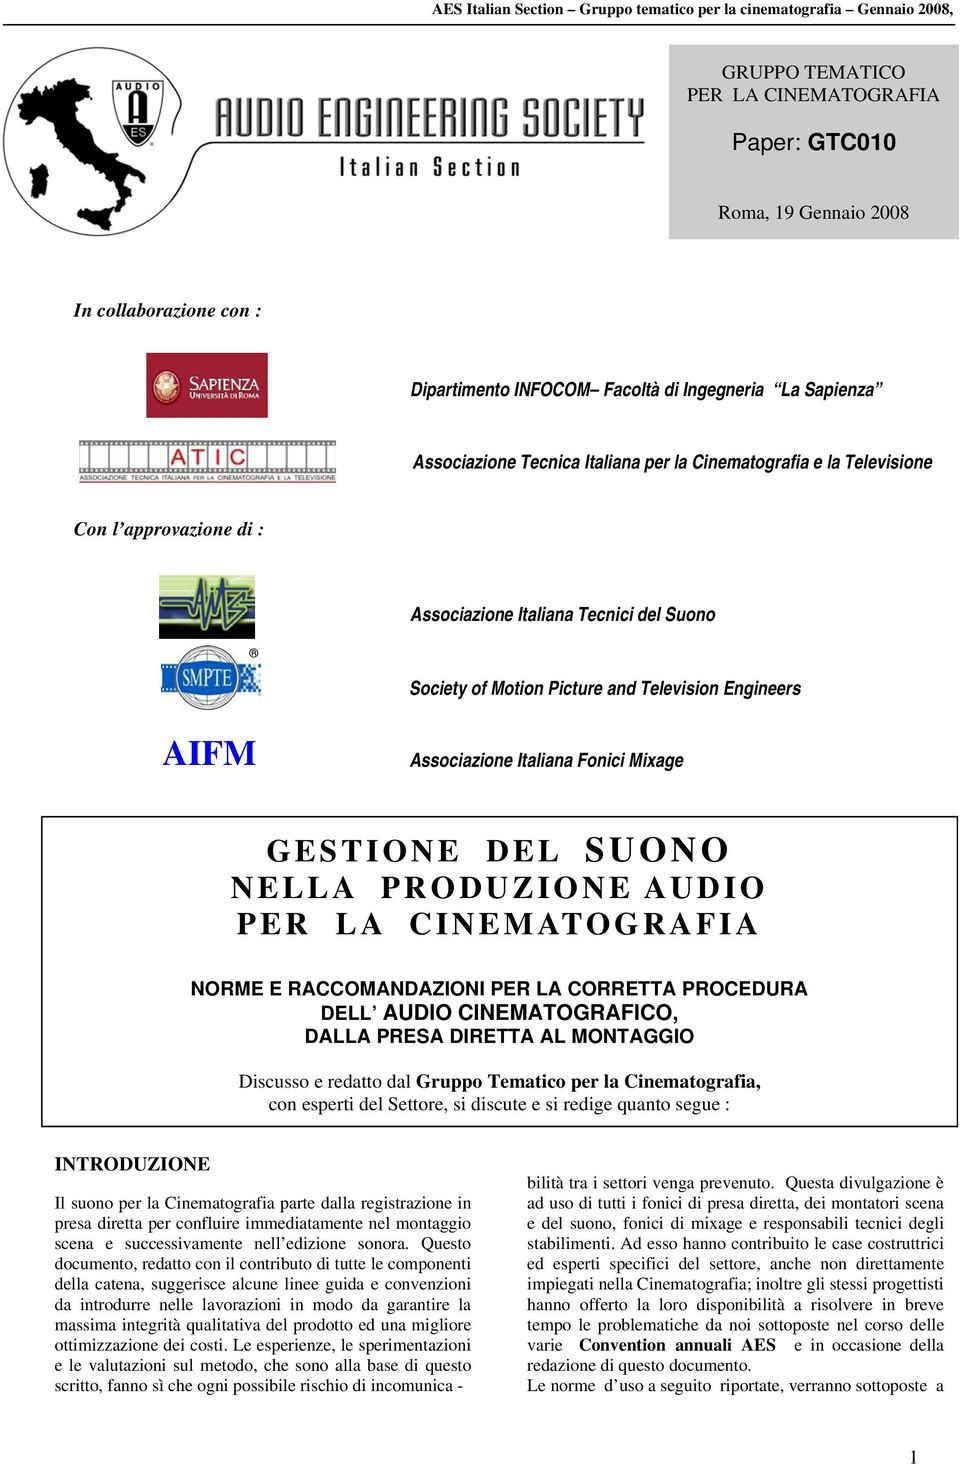 Engineers AIFM Associazione Italiana Fonici Mixage GESTIONE DEL SUONO NELLA PRODUZIONE AUDIO PER LA CINEMATOGRAFIA NORME E RACCOMANDAZIONI PER LA CORRETTA PROCEDURA DELL AUDIO CINEMATOGRAFICO, DALLA